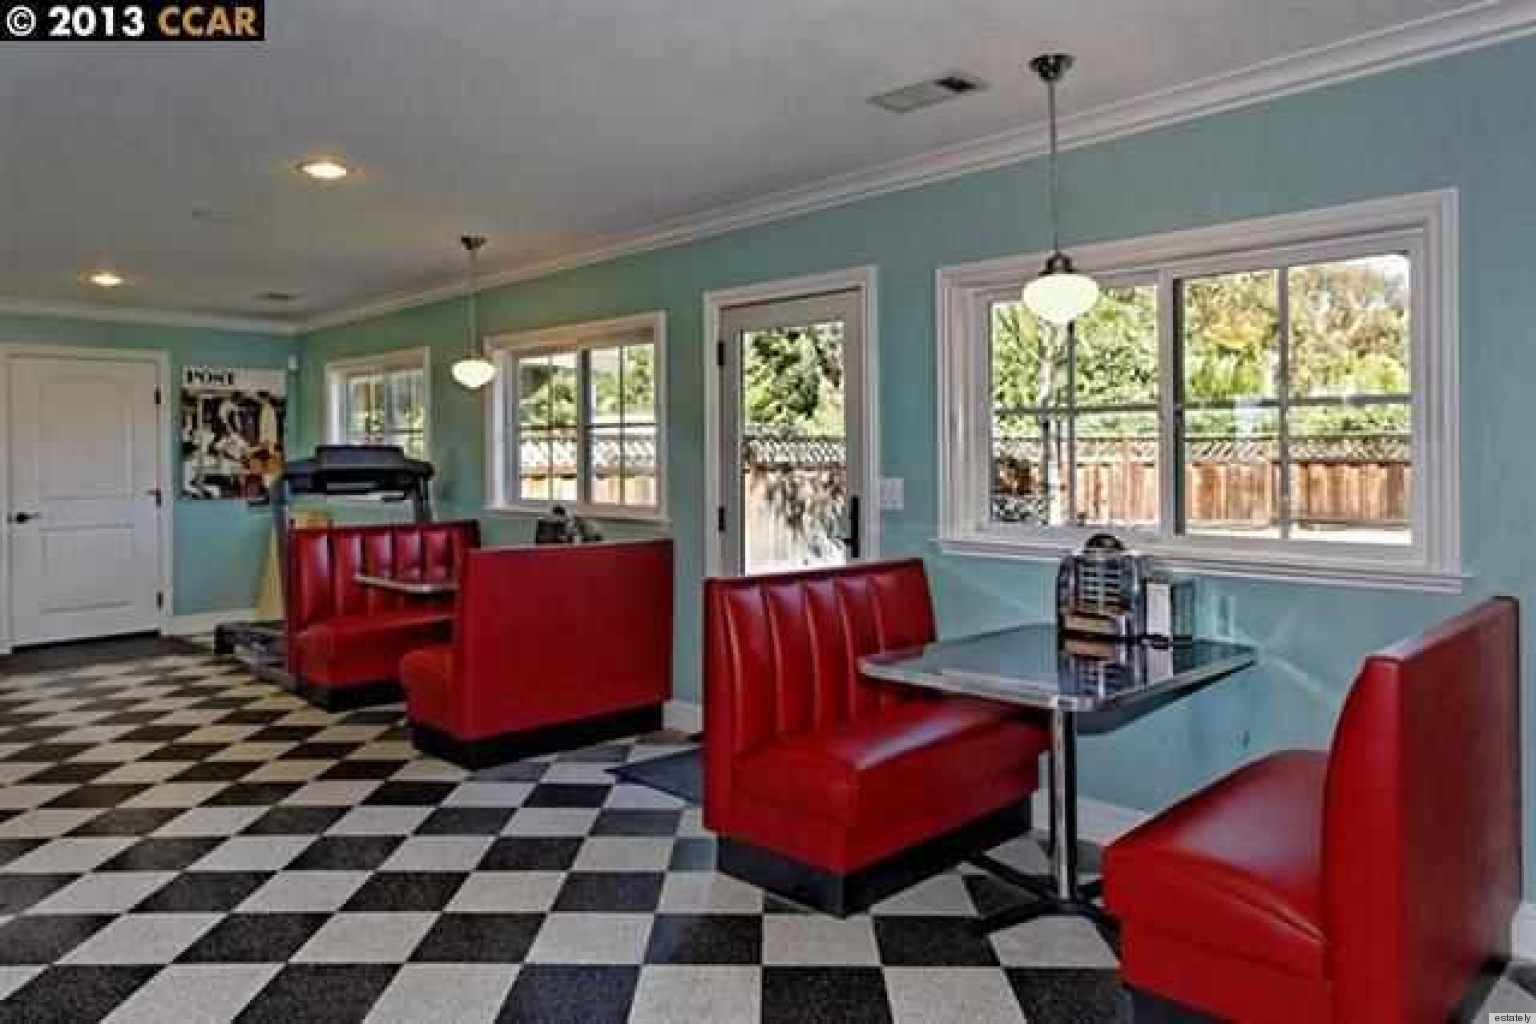 7 Homes For Sale With A 1950s Style Diner Inside Ryan Nickum